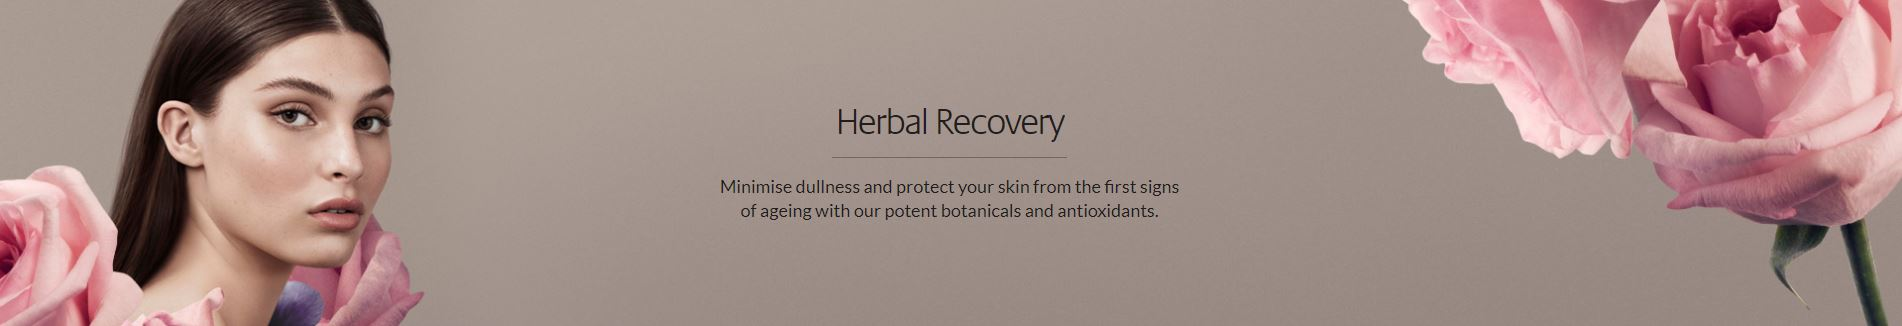 Herbal Recovery Inspiring Banner